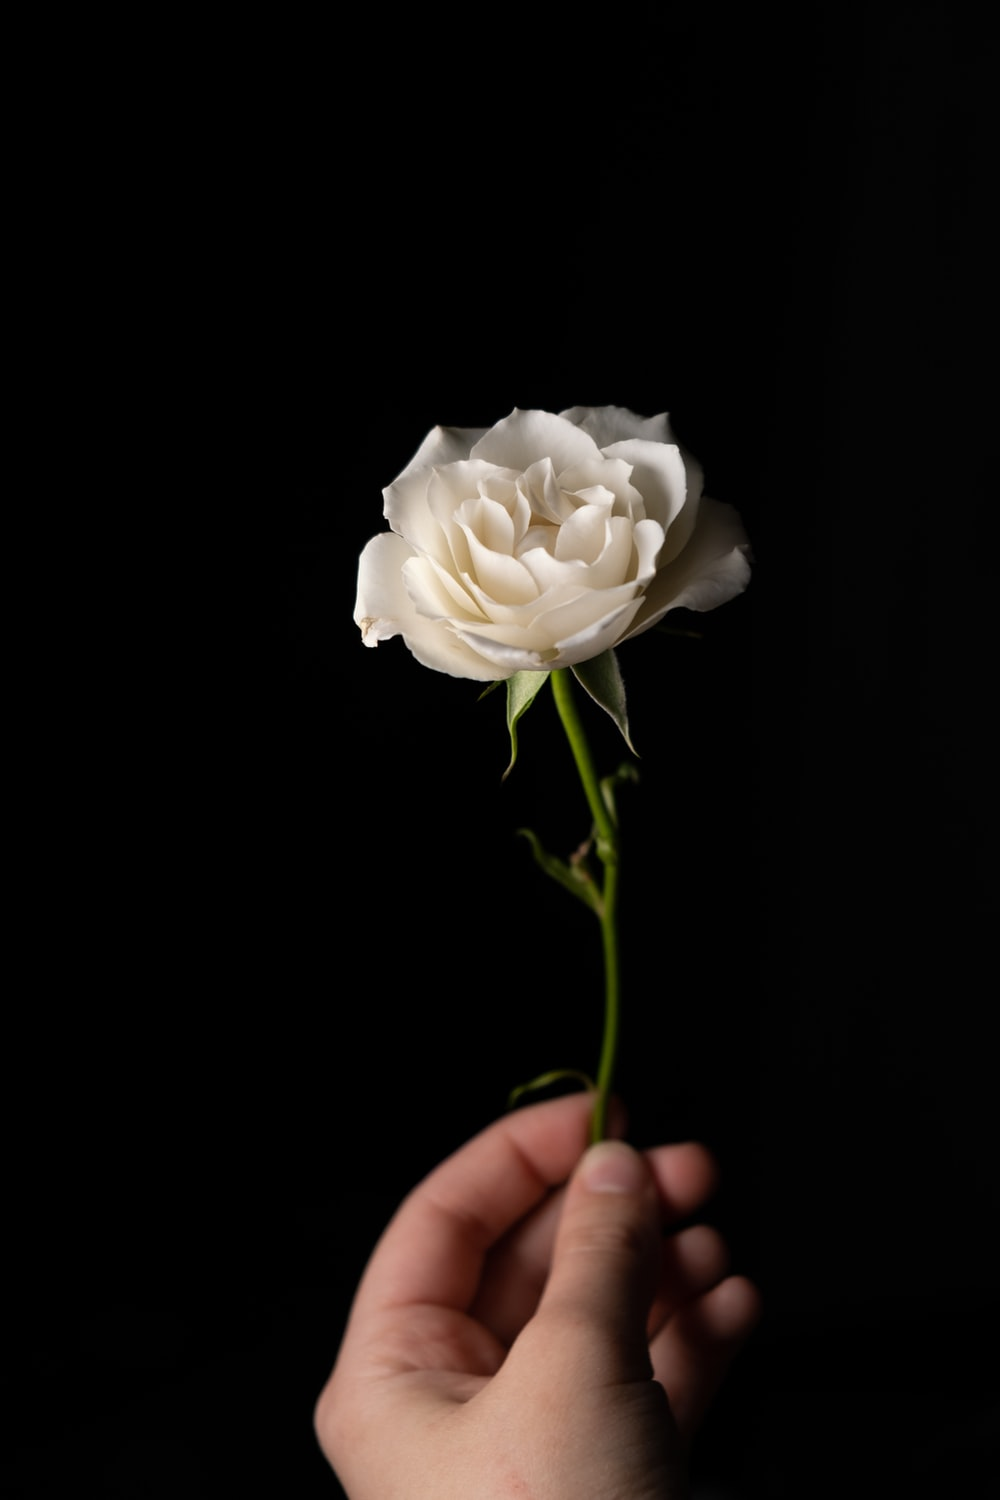 white rose in persons hand